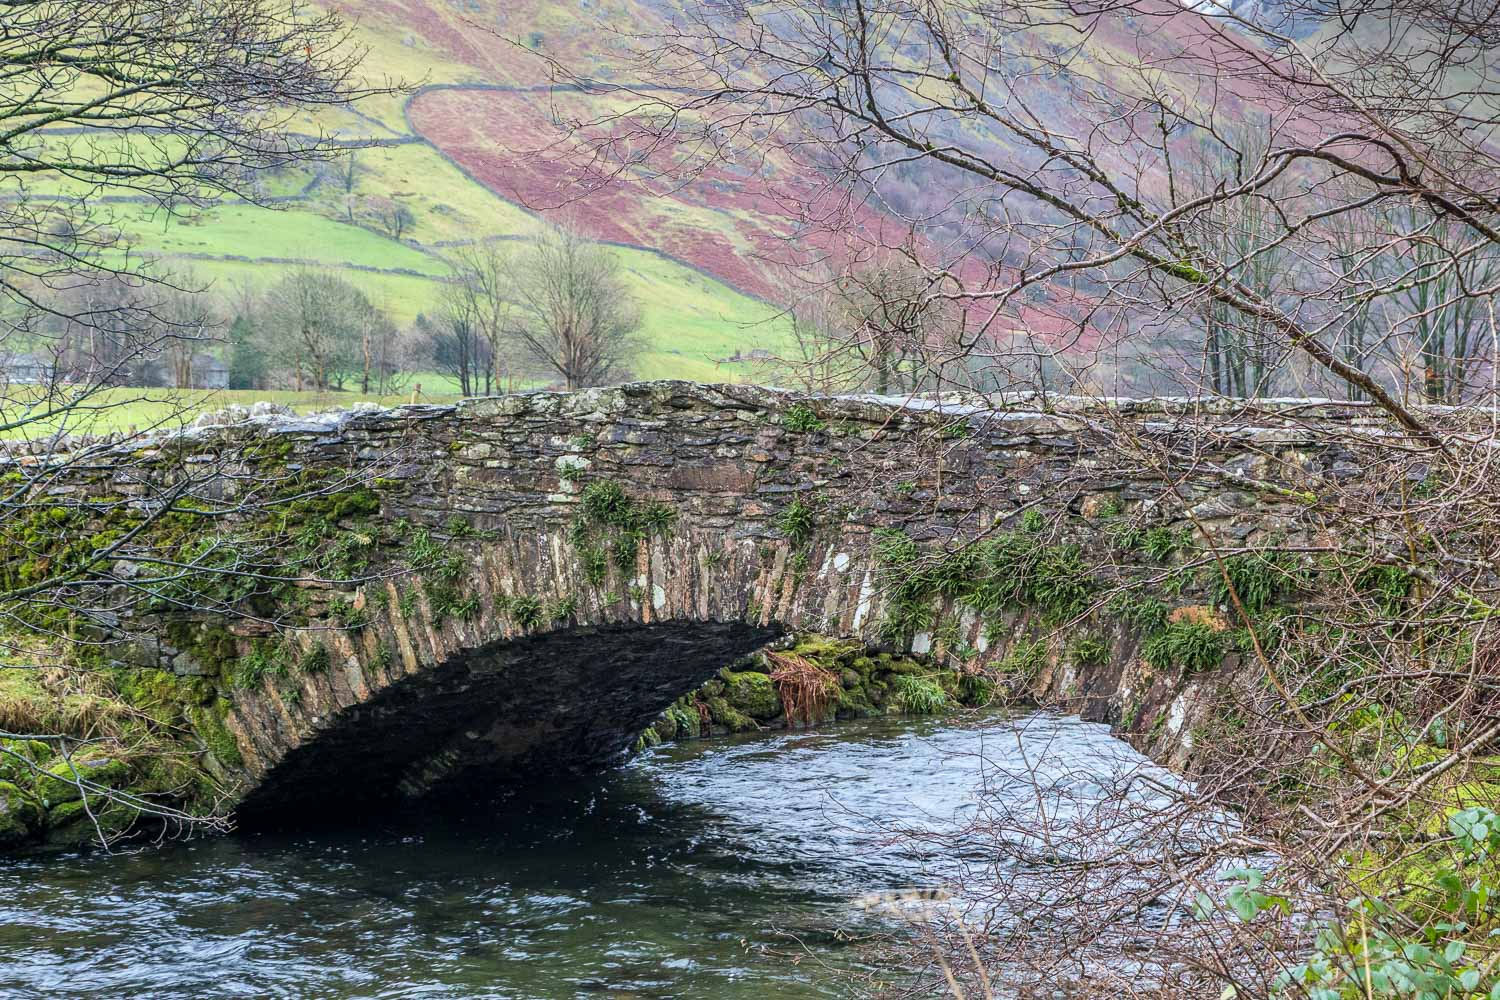 Cow Bridge Patterdale, Goldrill Beck